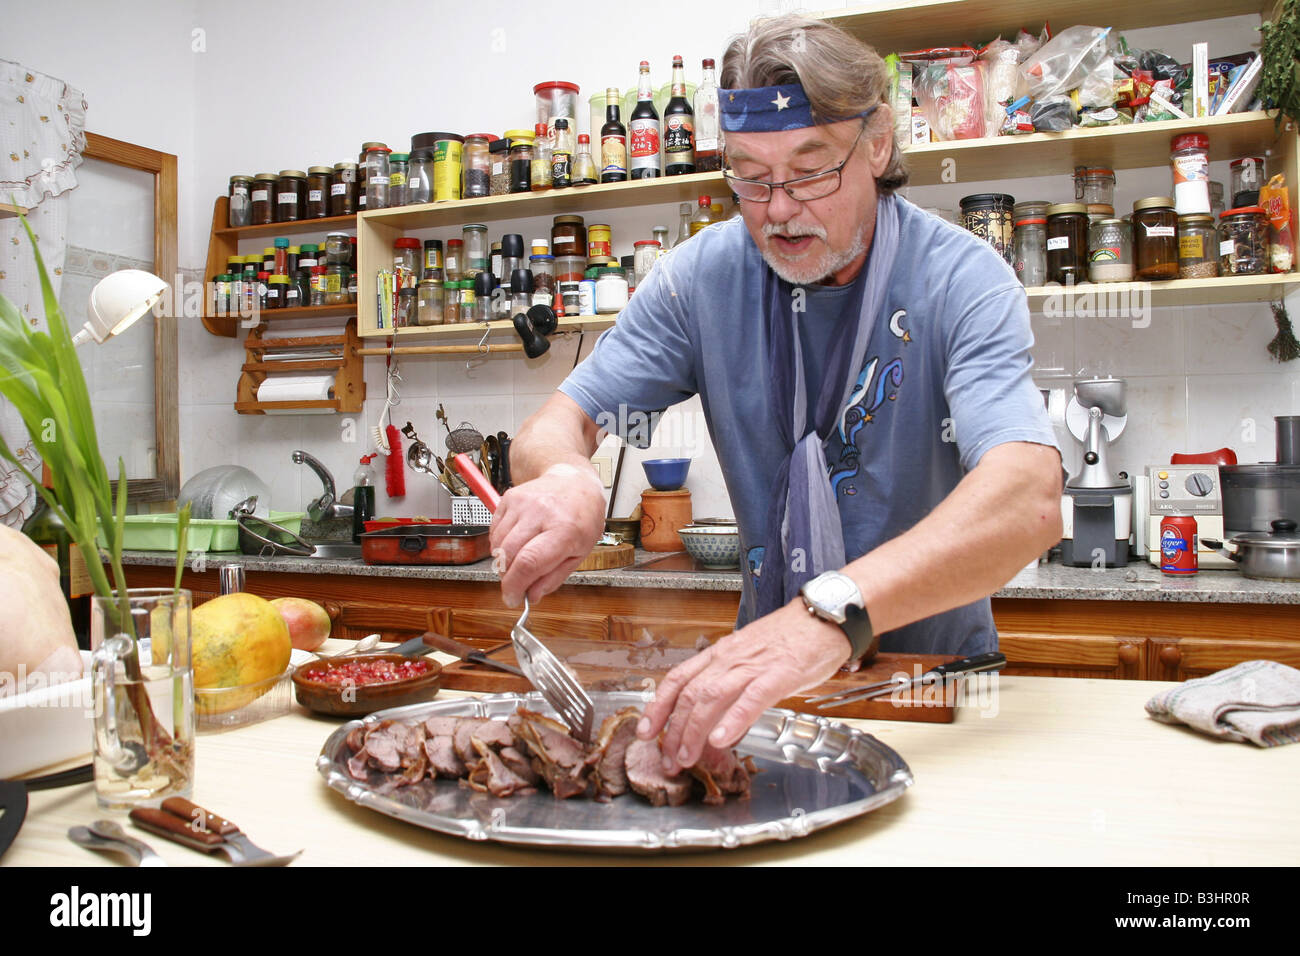 man in the kitchen - Stock Image